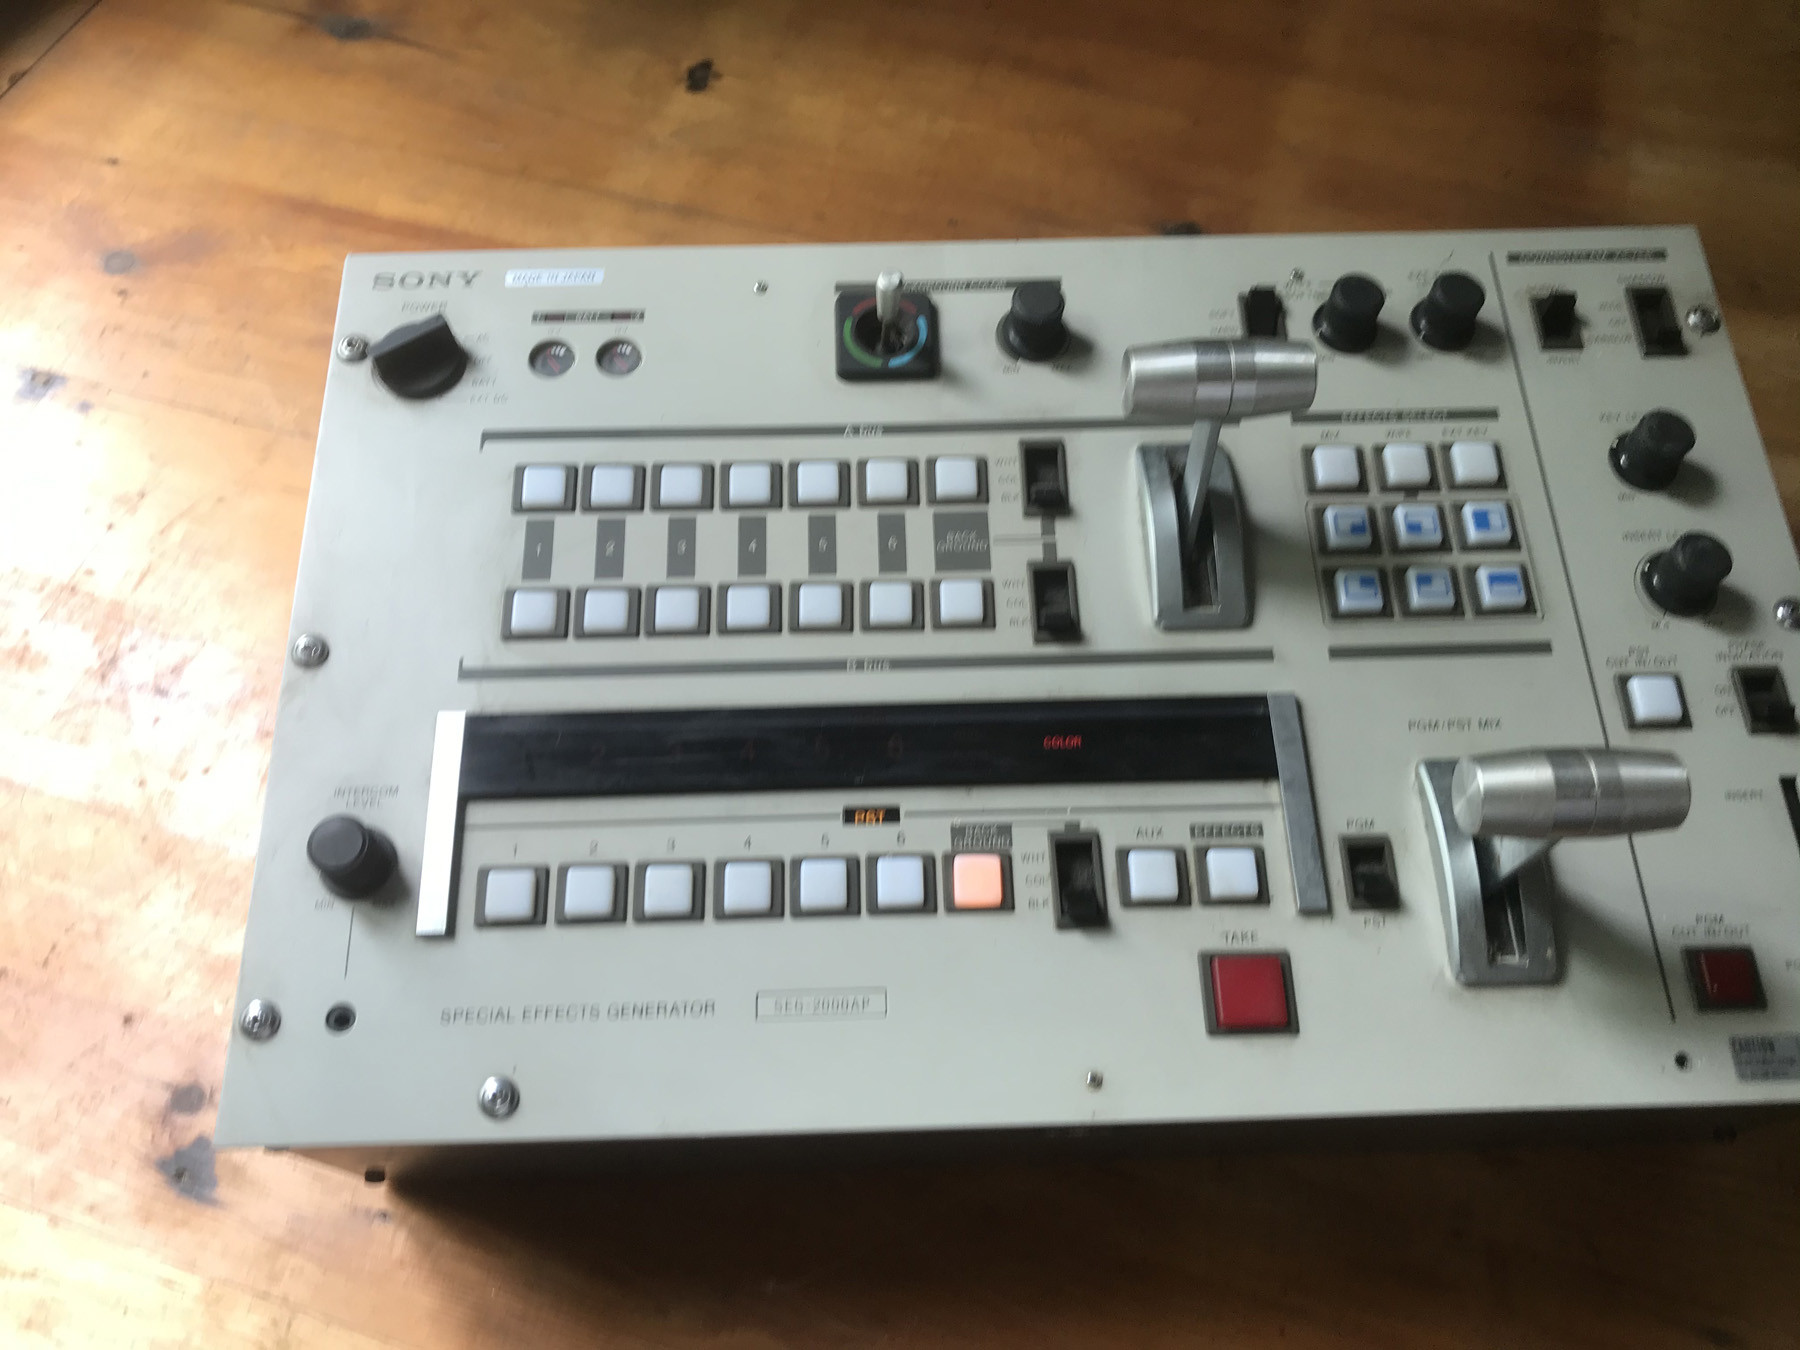 SONY SEG-2000 AP - PROFESSIONAL BROADCAST SWITCHER AND EFFECTS GENERATOR